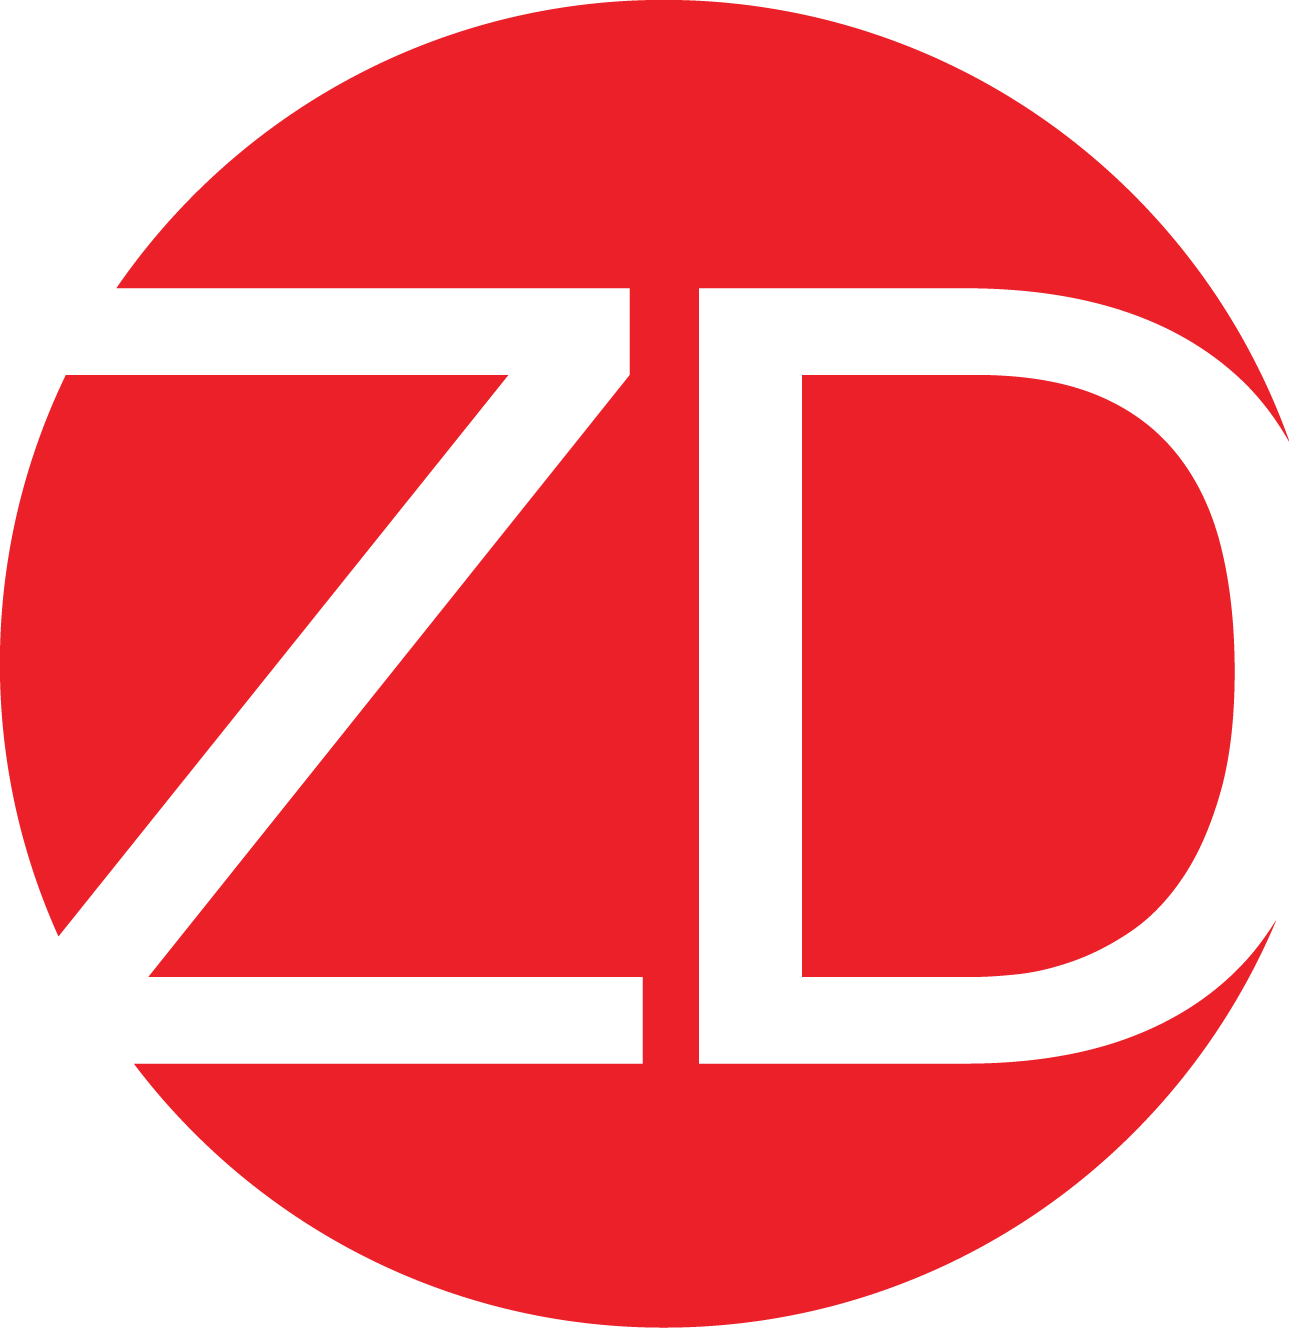 Zurlinden Design Logo